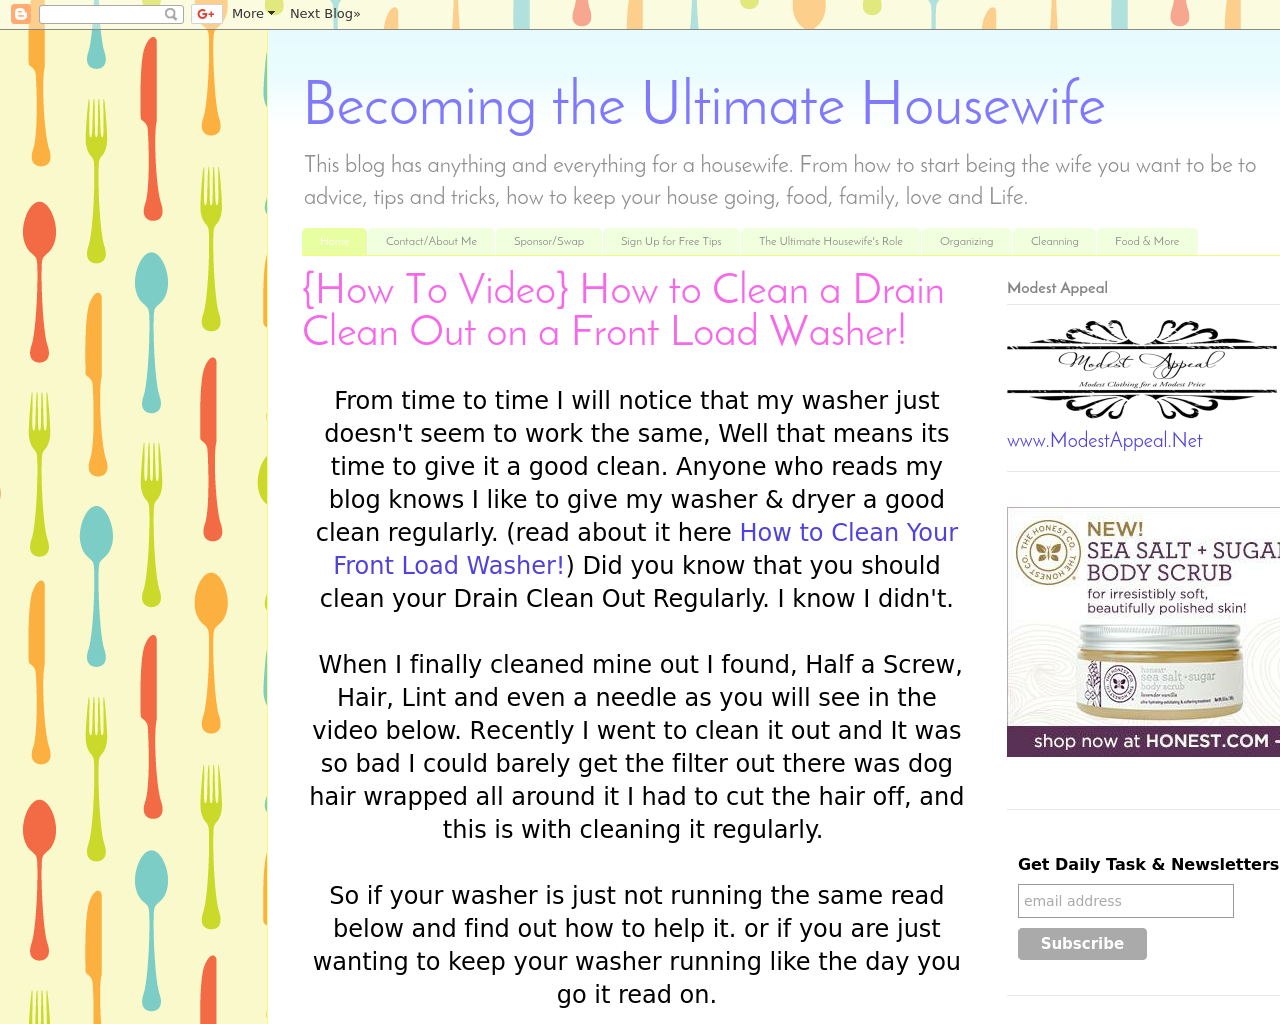 Becoming-The-Ultimate-Housewife-Advertising-Reviews-Pricing